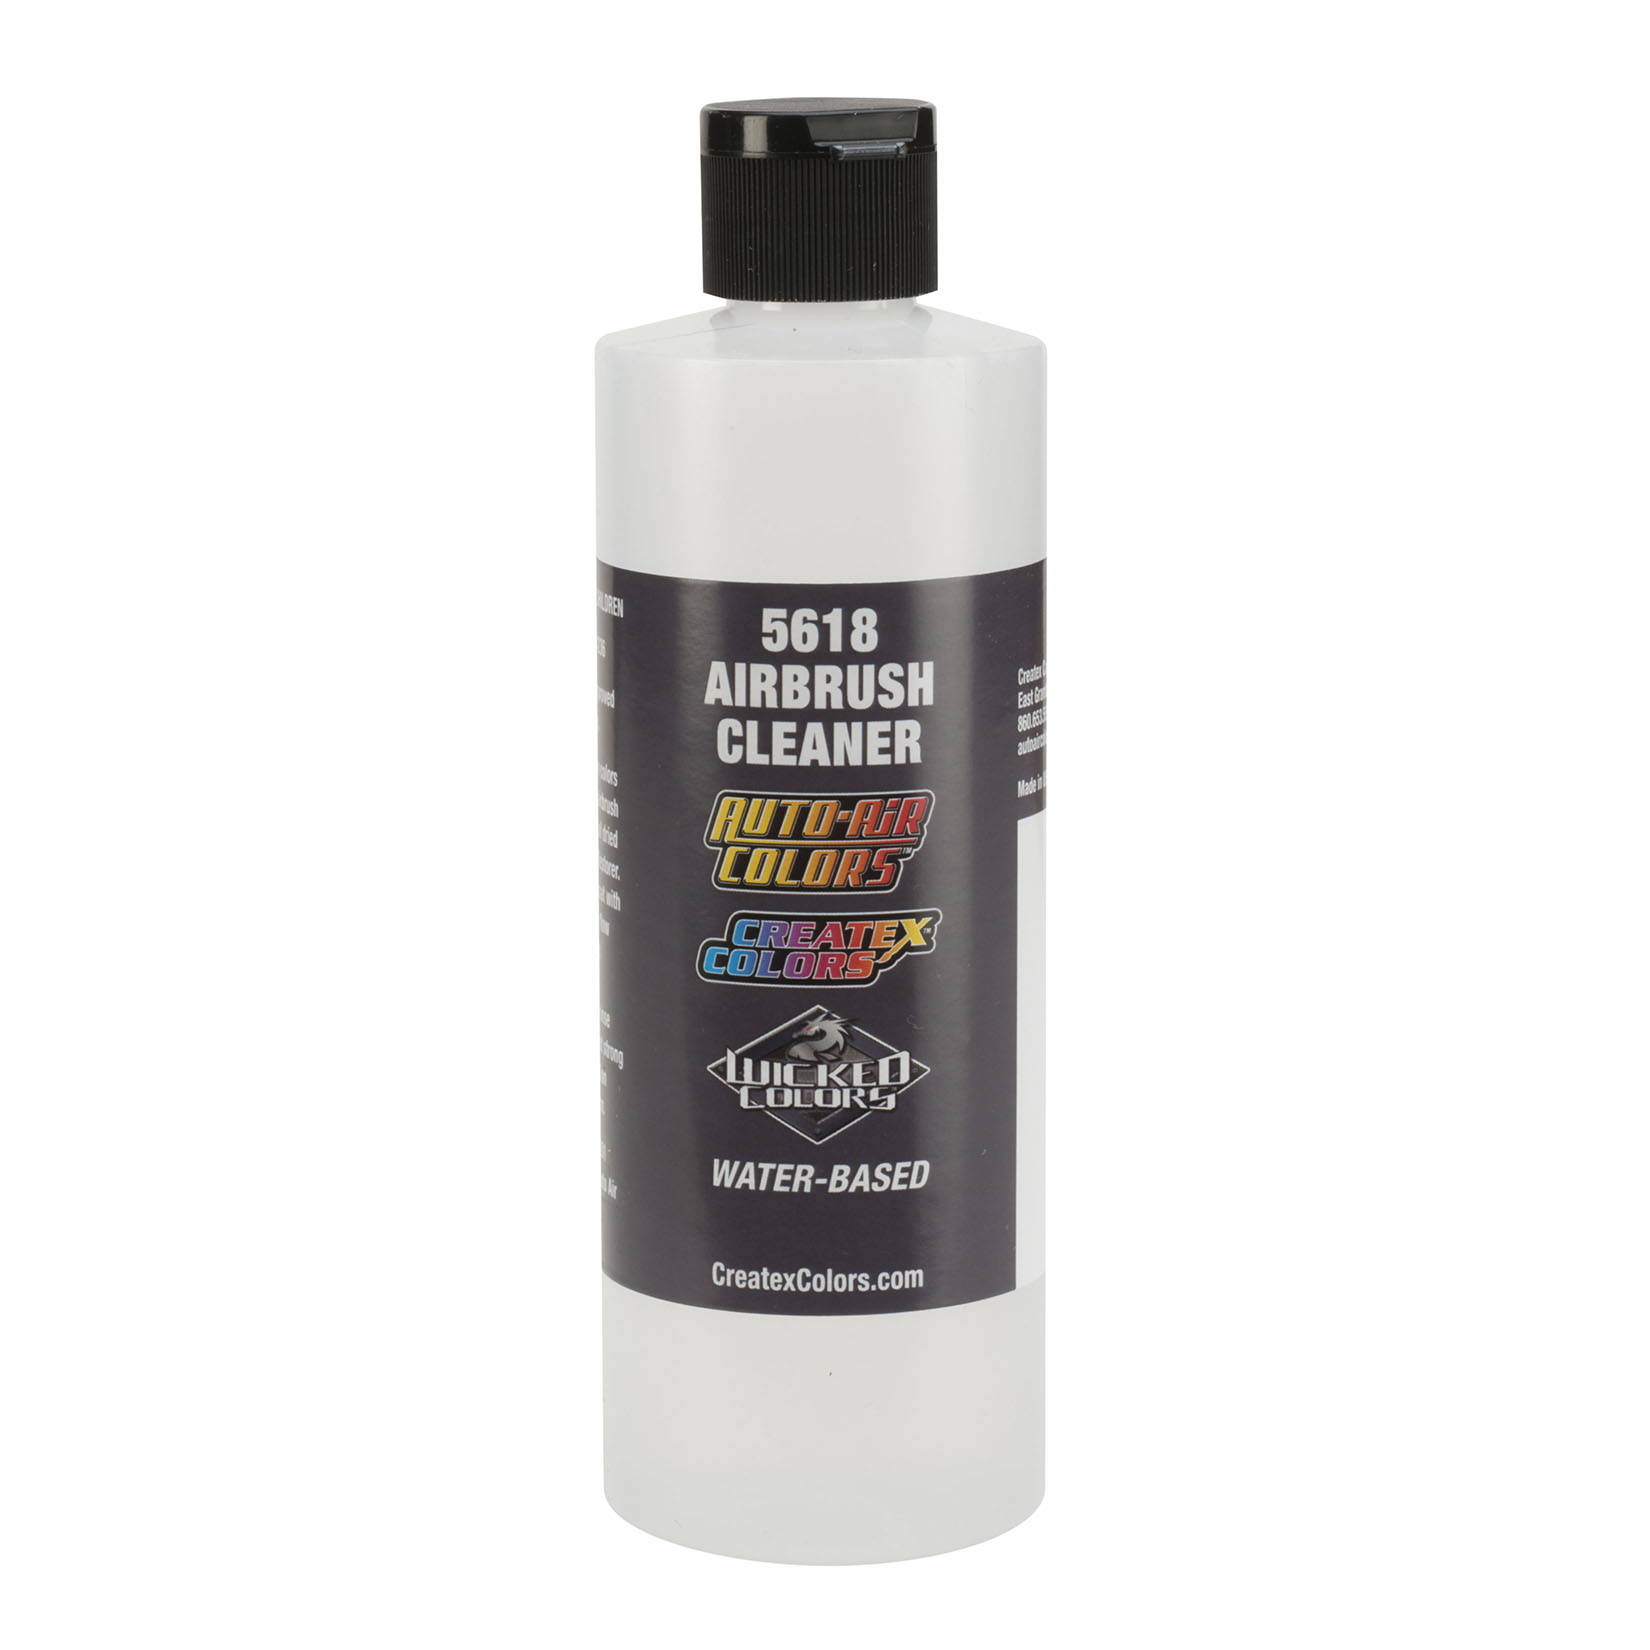 Airbrush Cleaner 5618